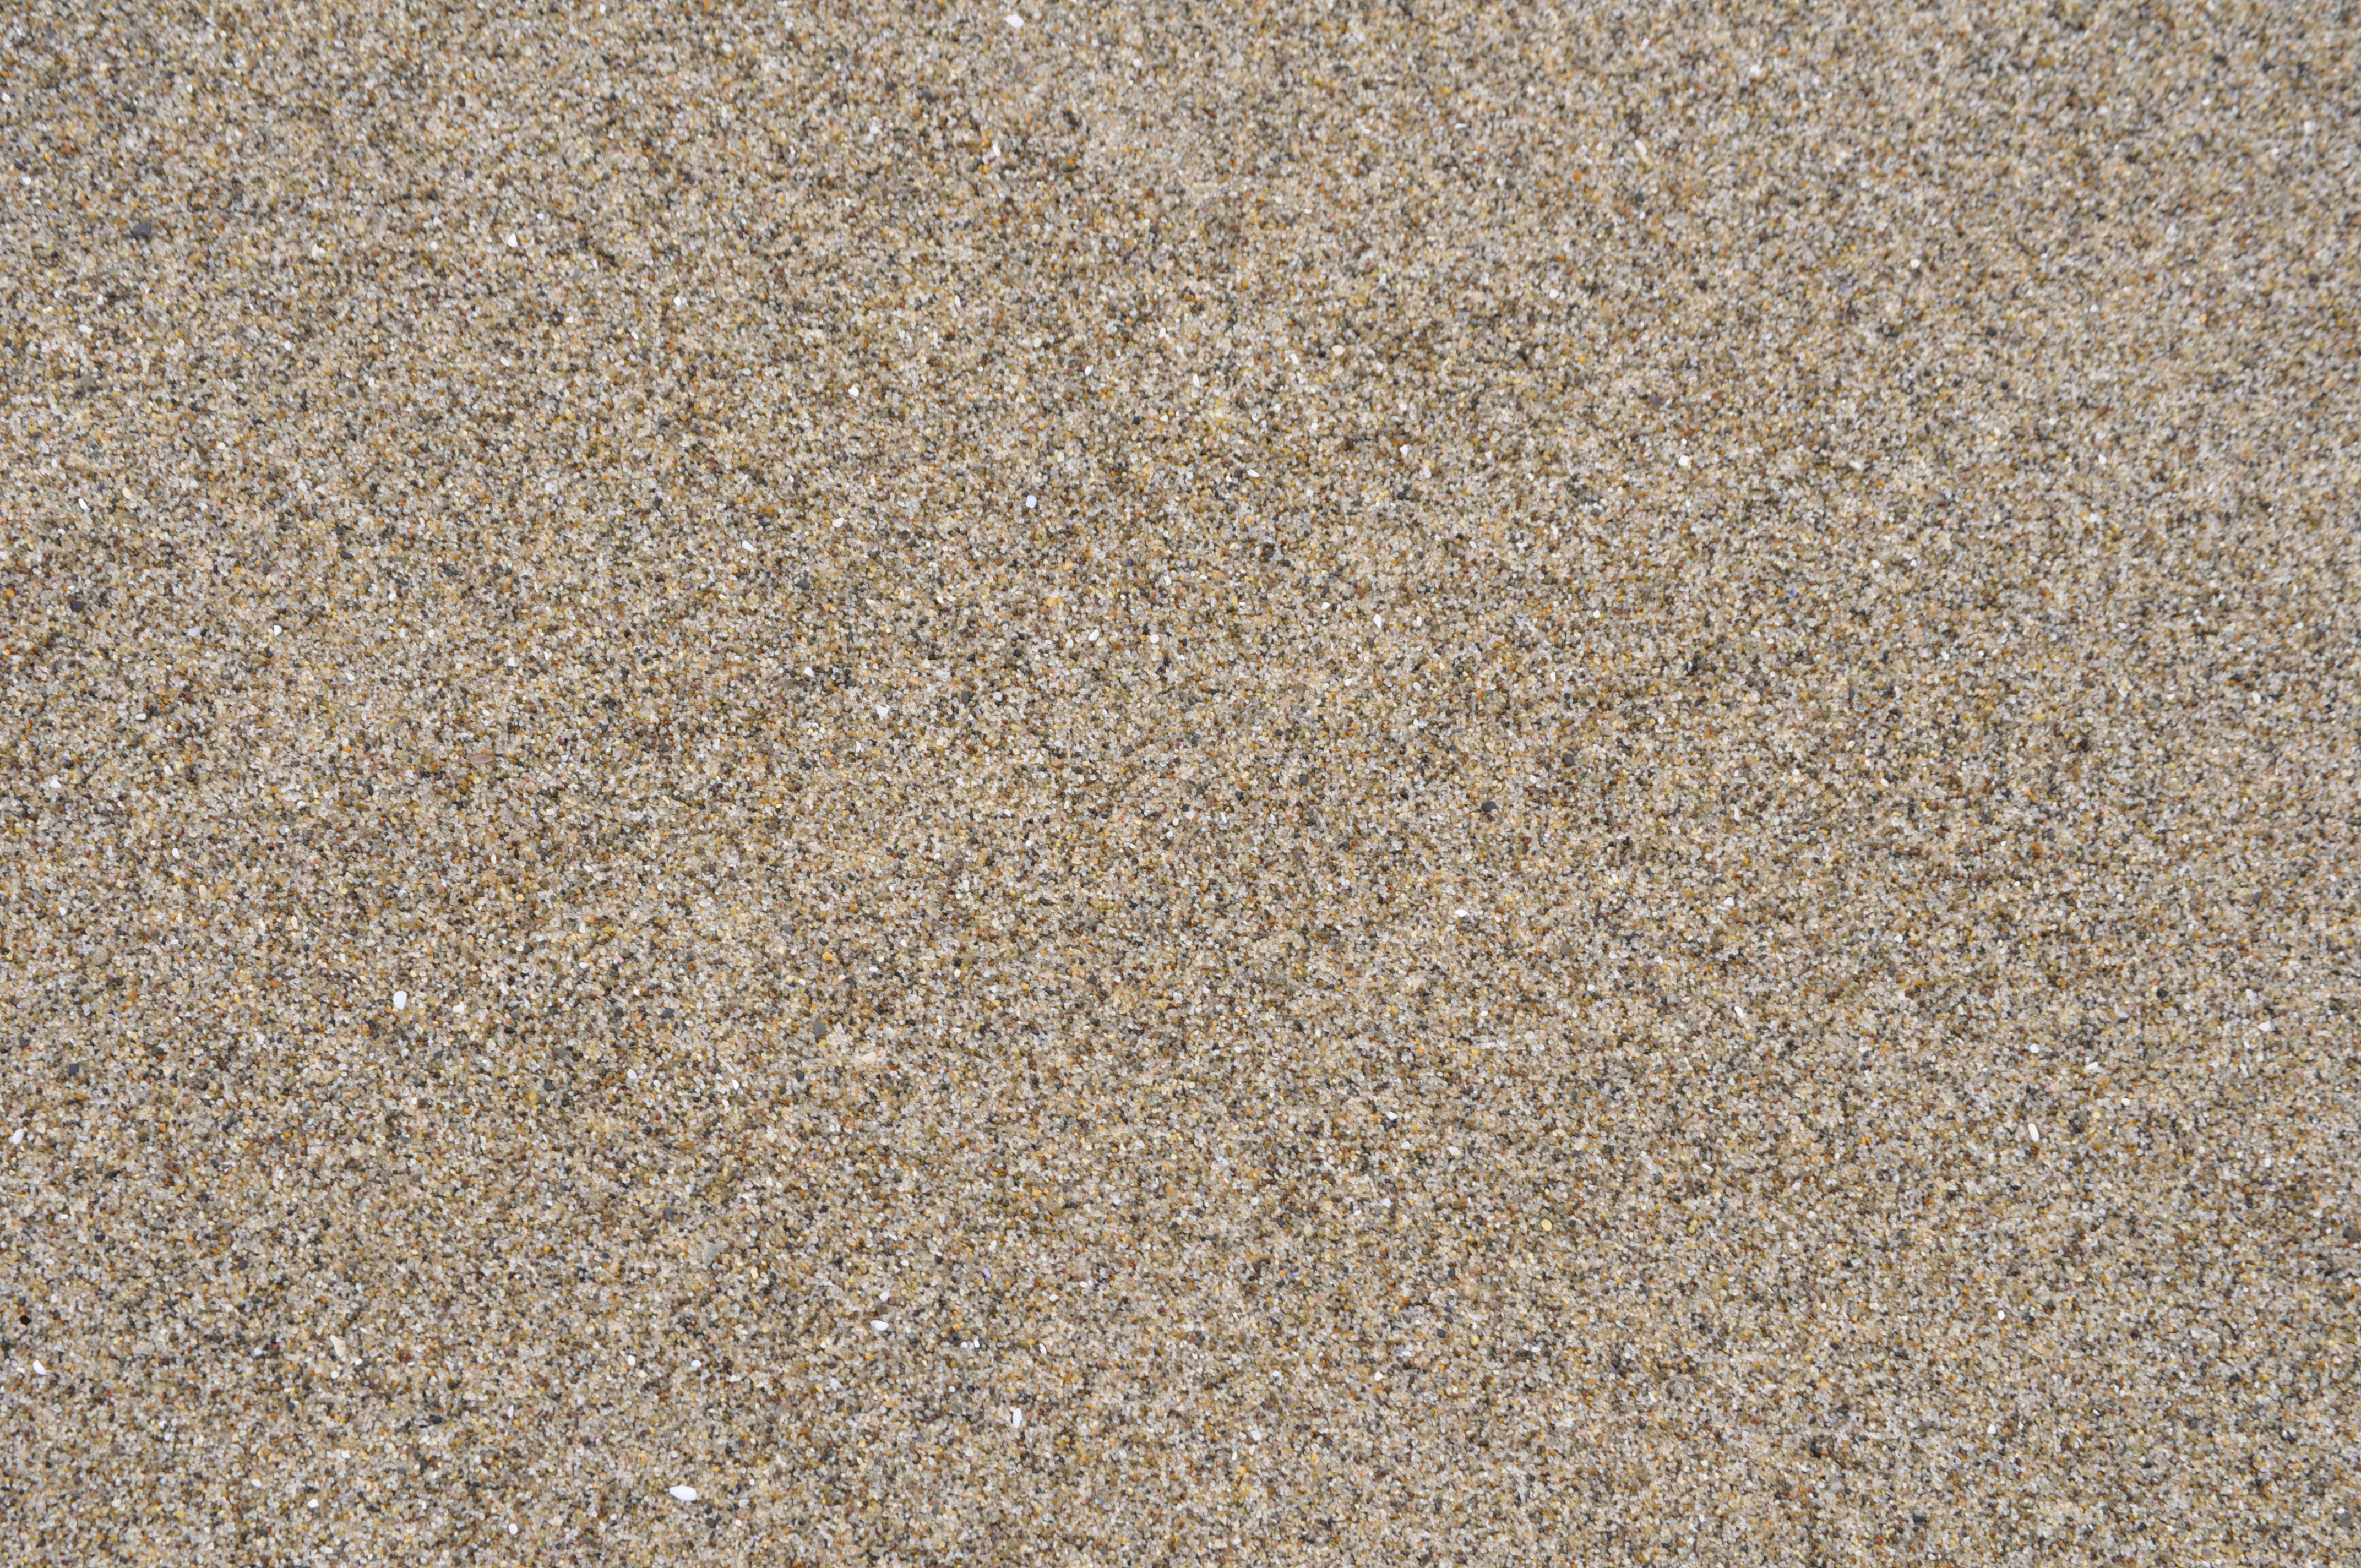 Sand Texture, Pattern, Brush by Zephroth